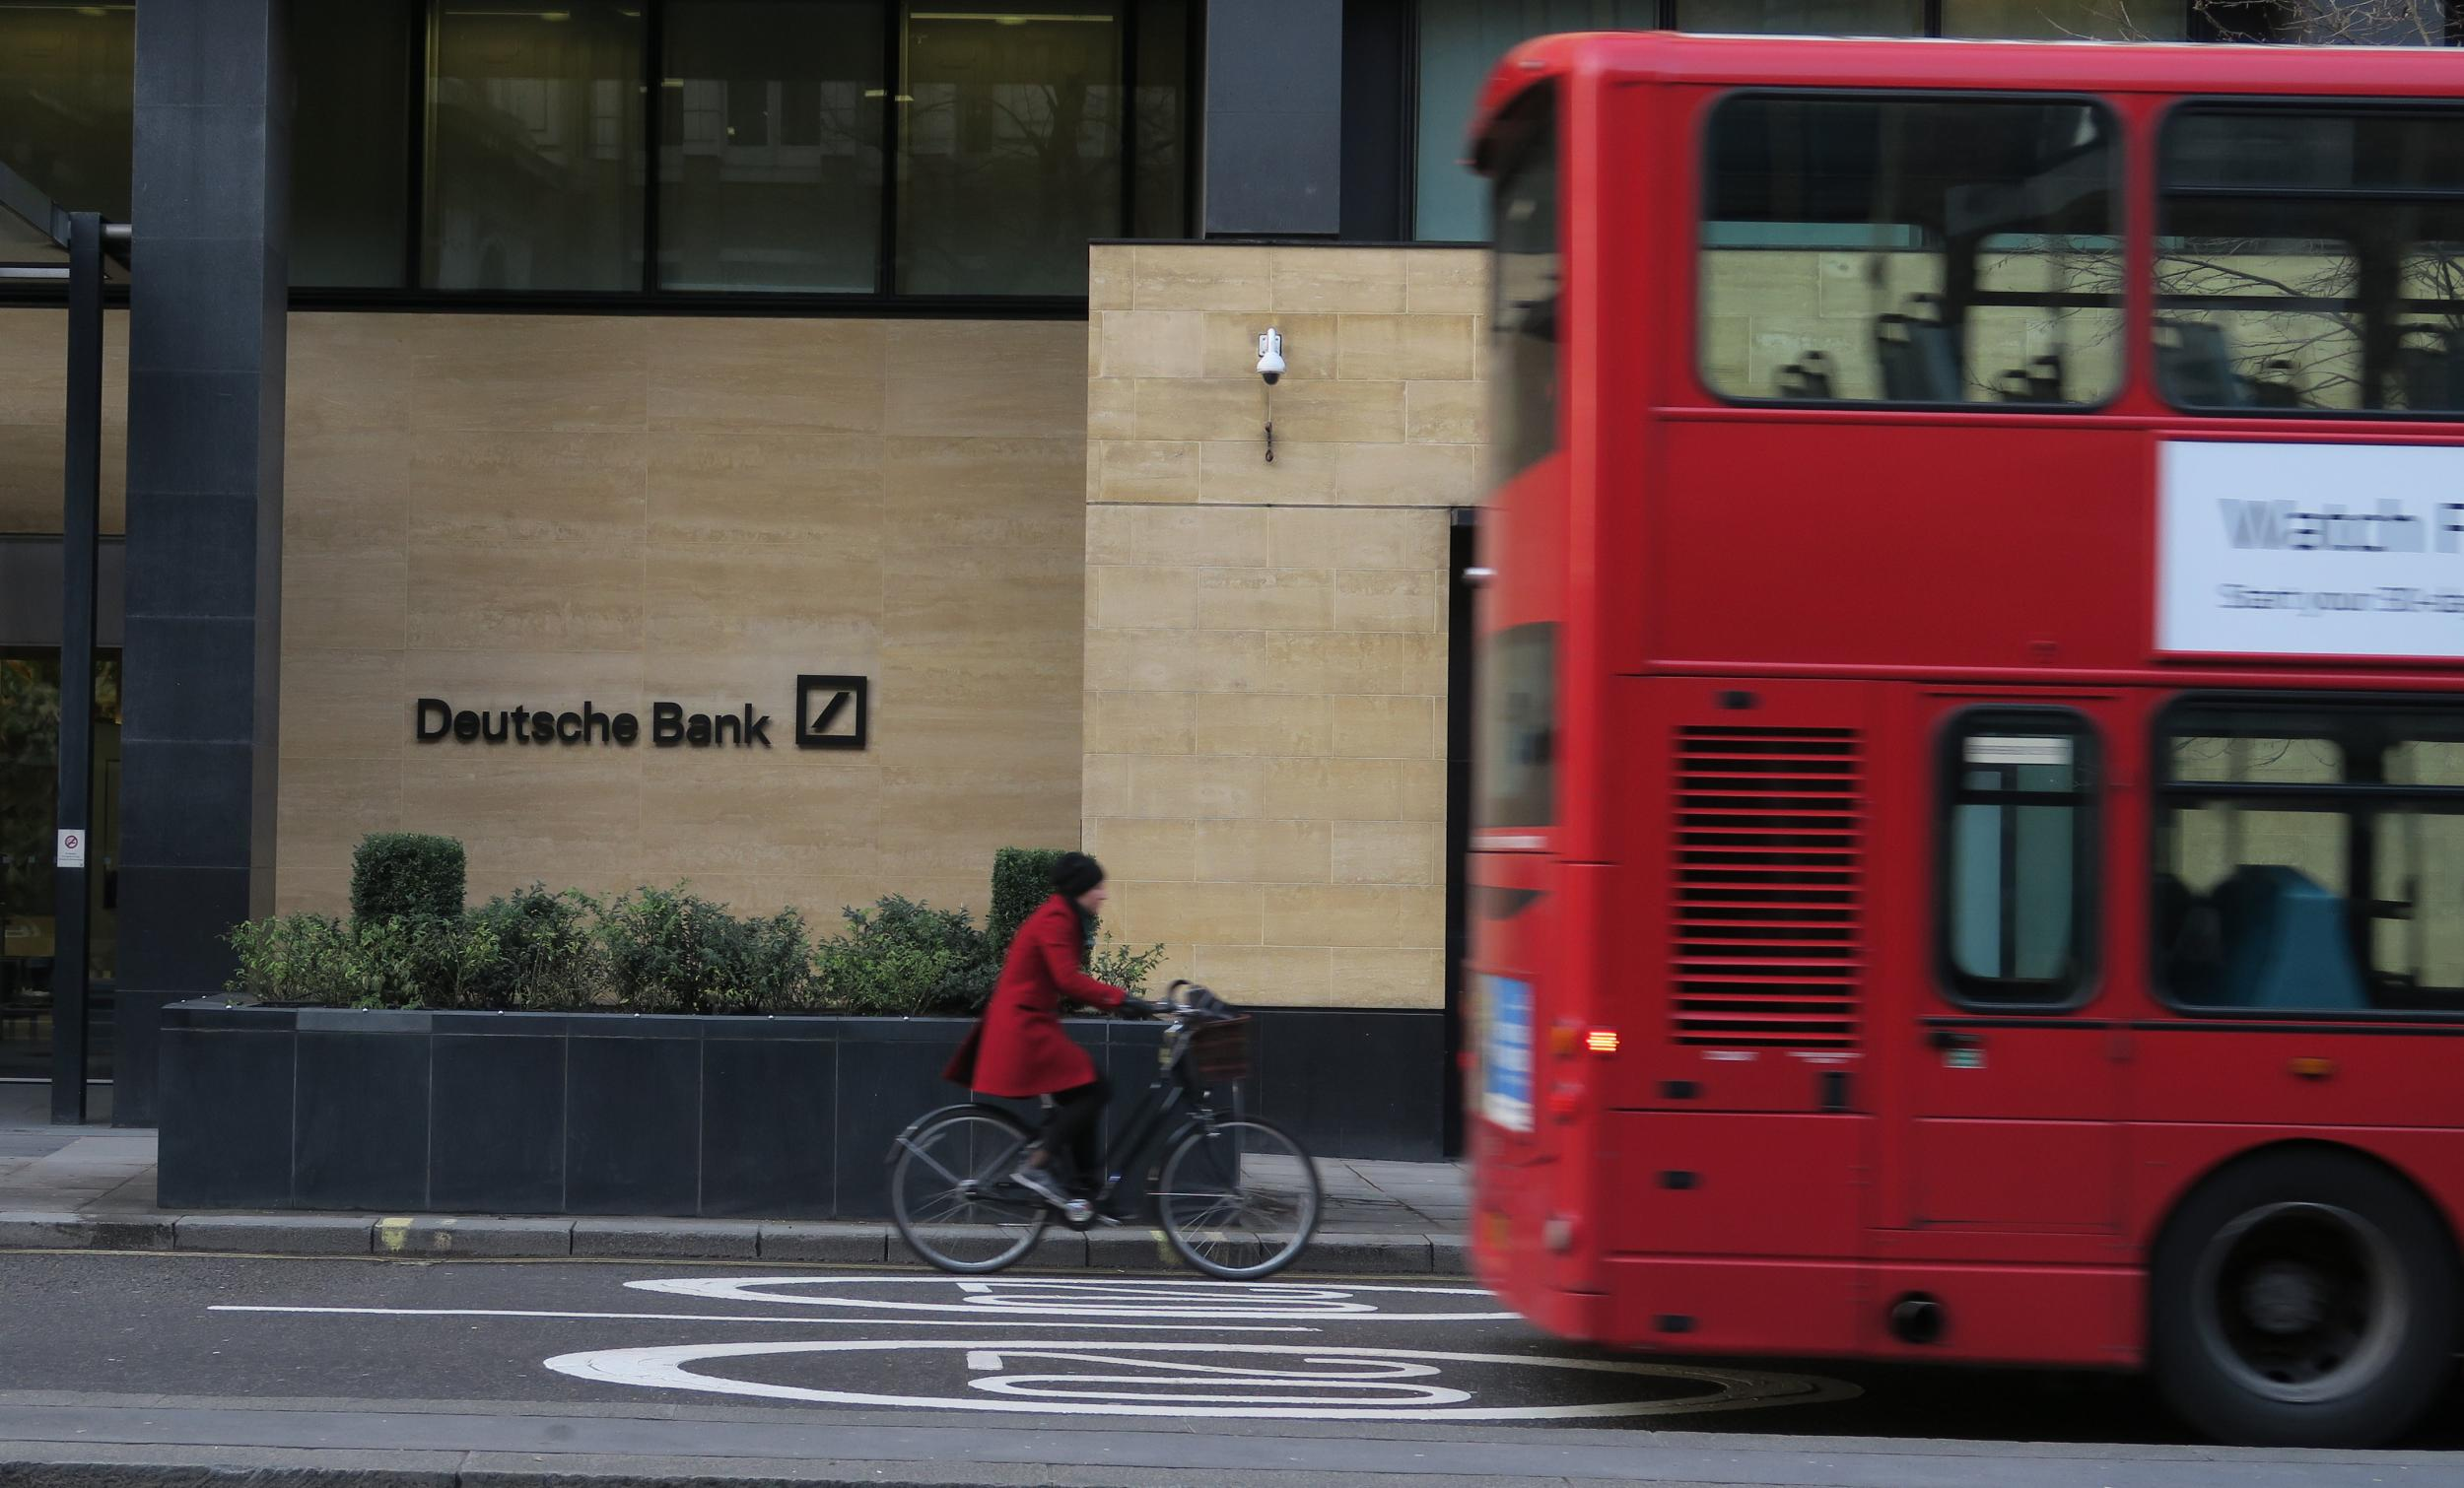 City jobs at risk as Deutsche Bank plans to cut more than 7,000 roles